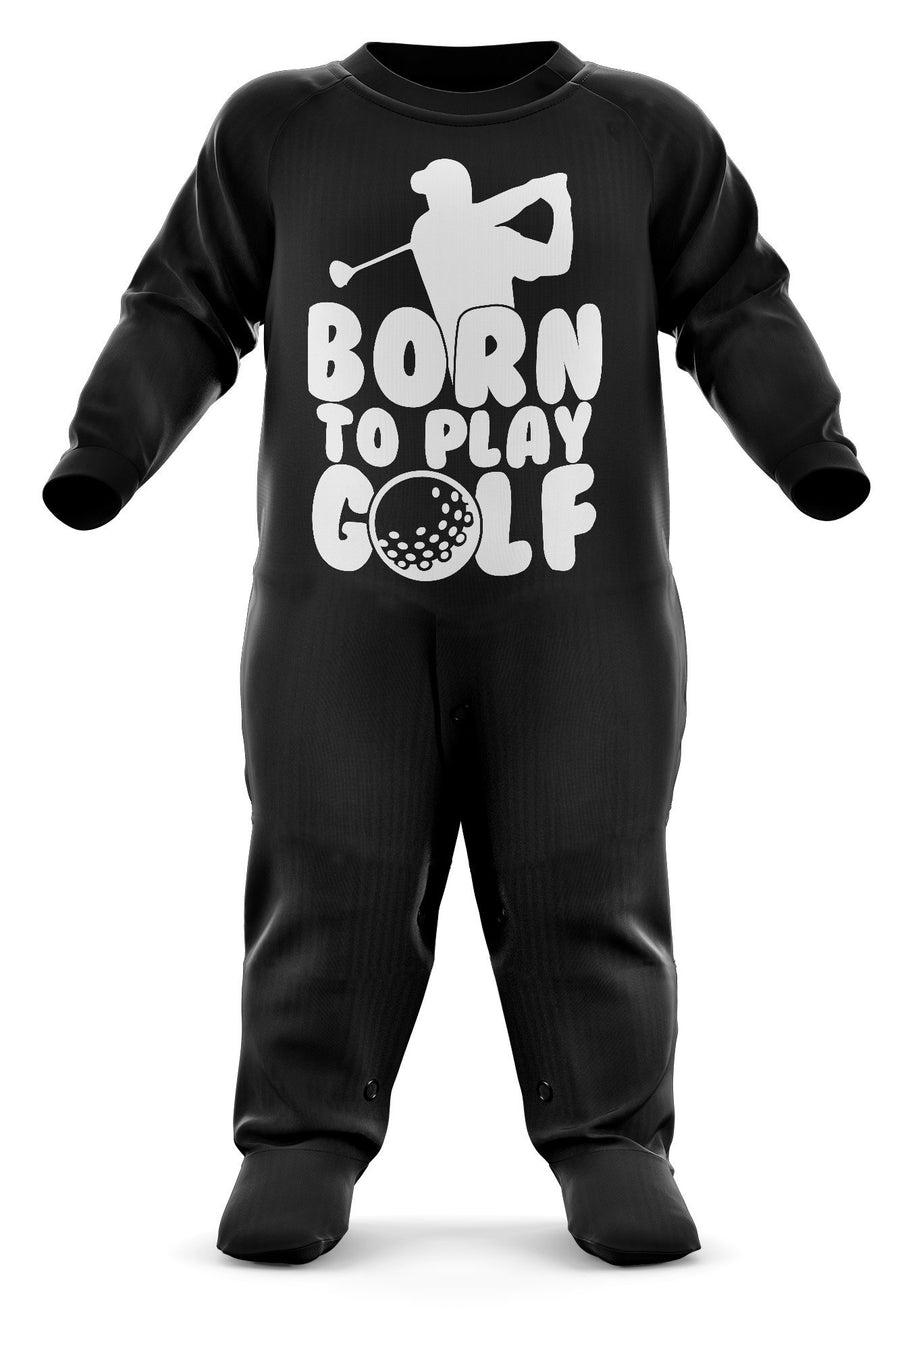 Born To Play Golf Babygrow - Golfer Baby Romper Suit - Babies Golf Christmas Gift - Birthday Present - Newborn Romper